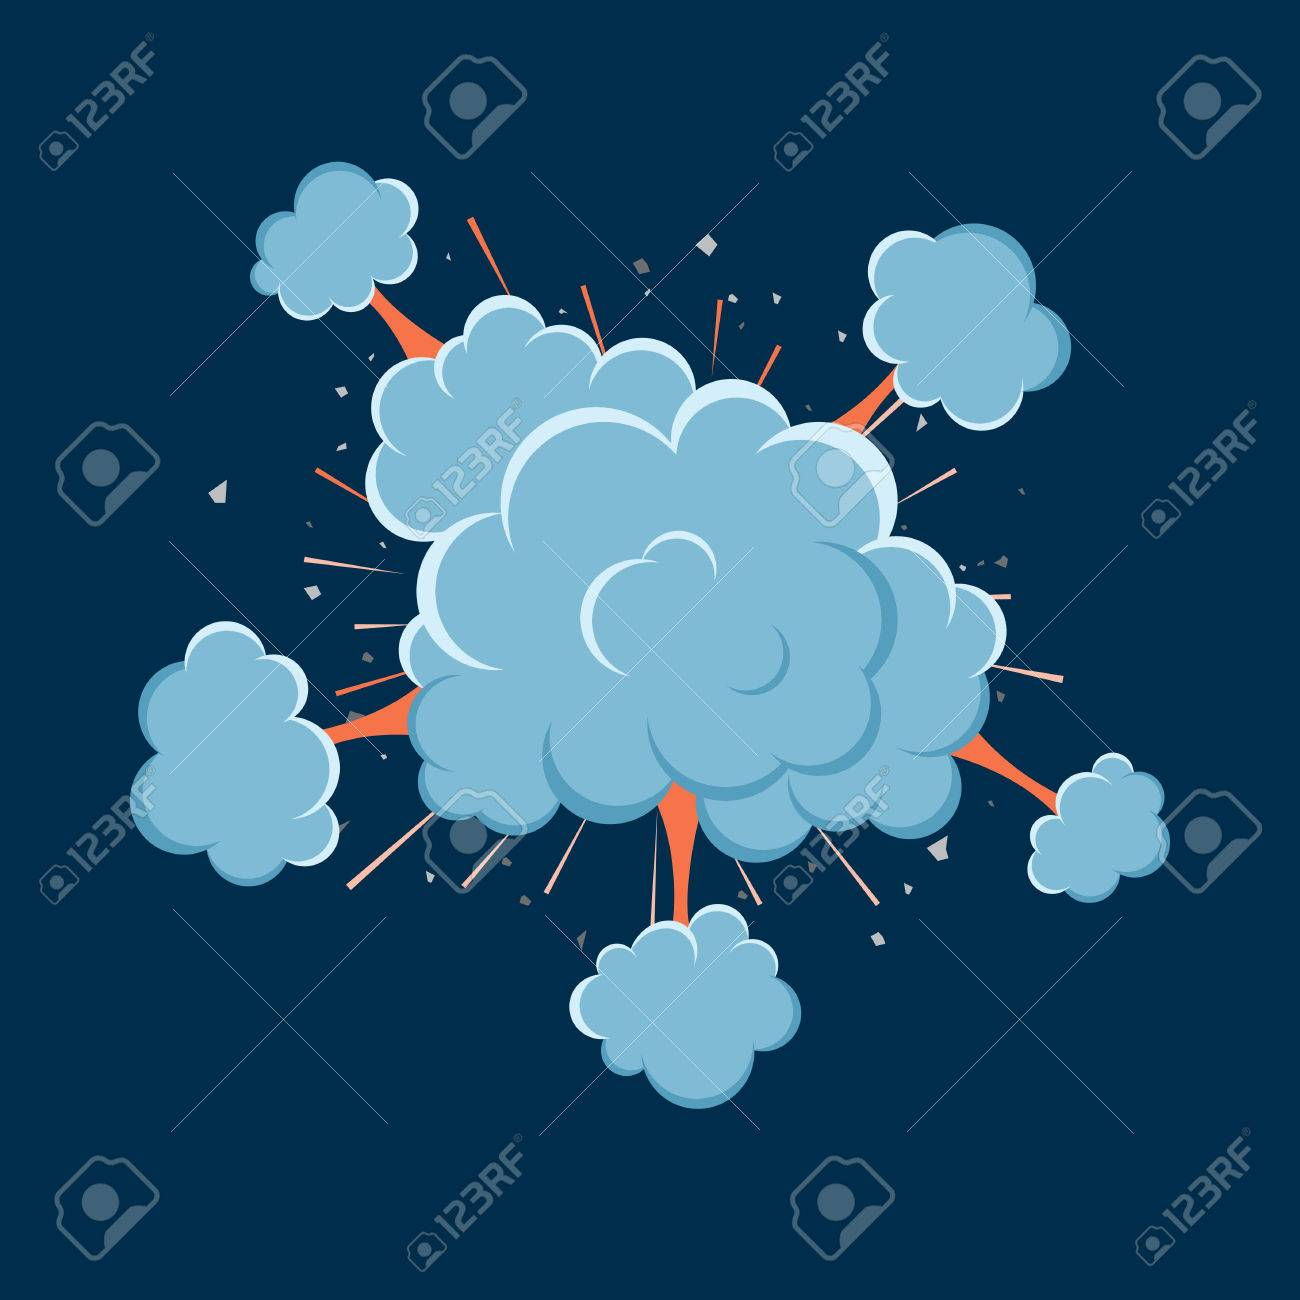 Cartoon vector bomb explosion with smoke  Cartoon style  Effect